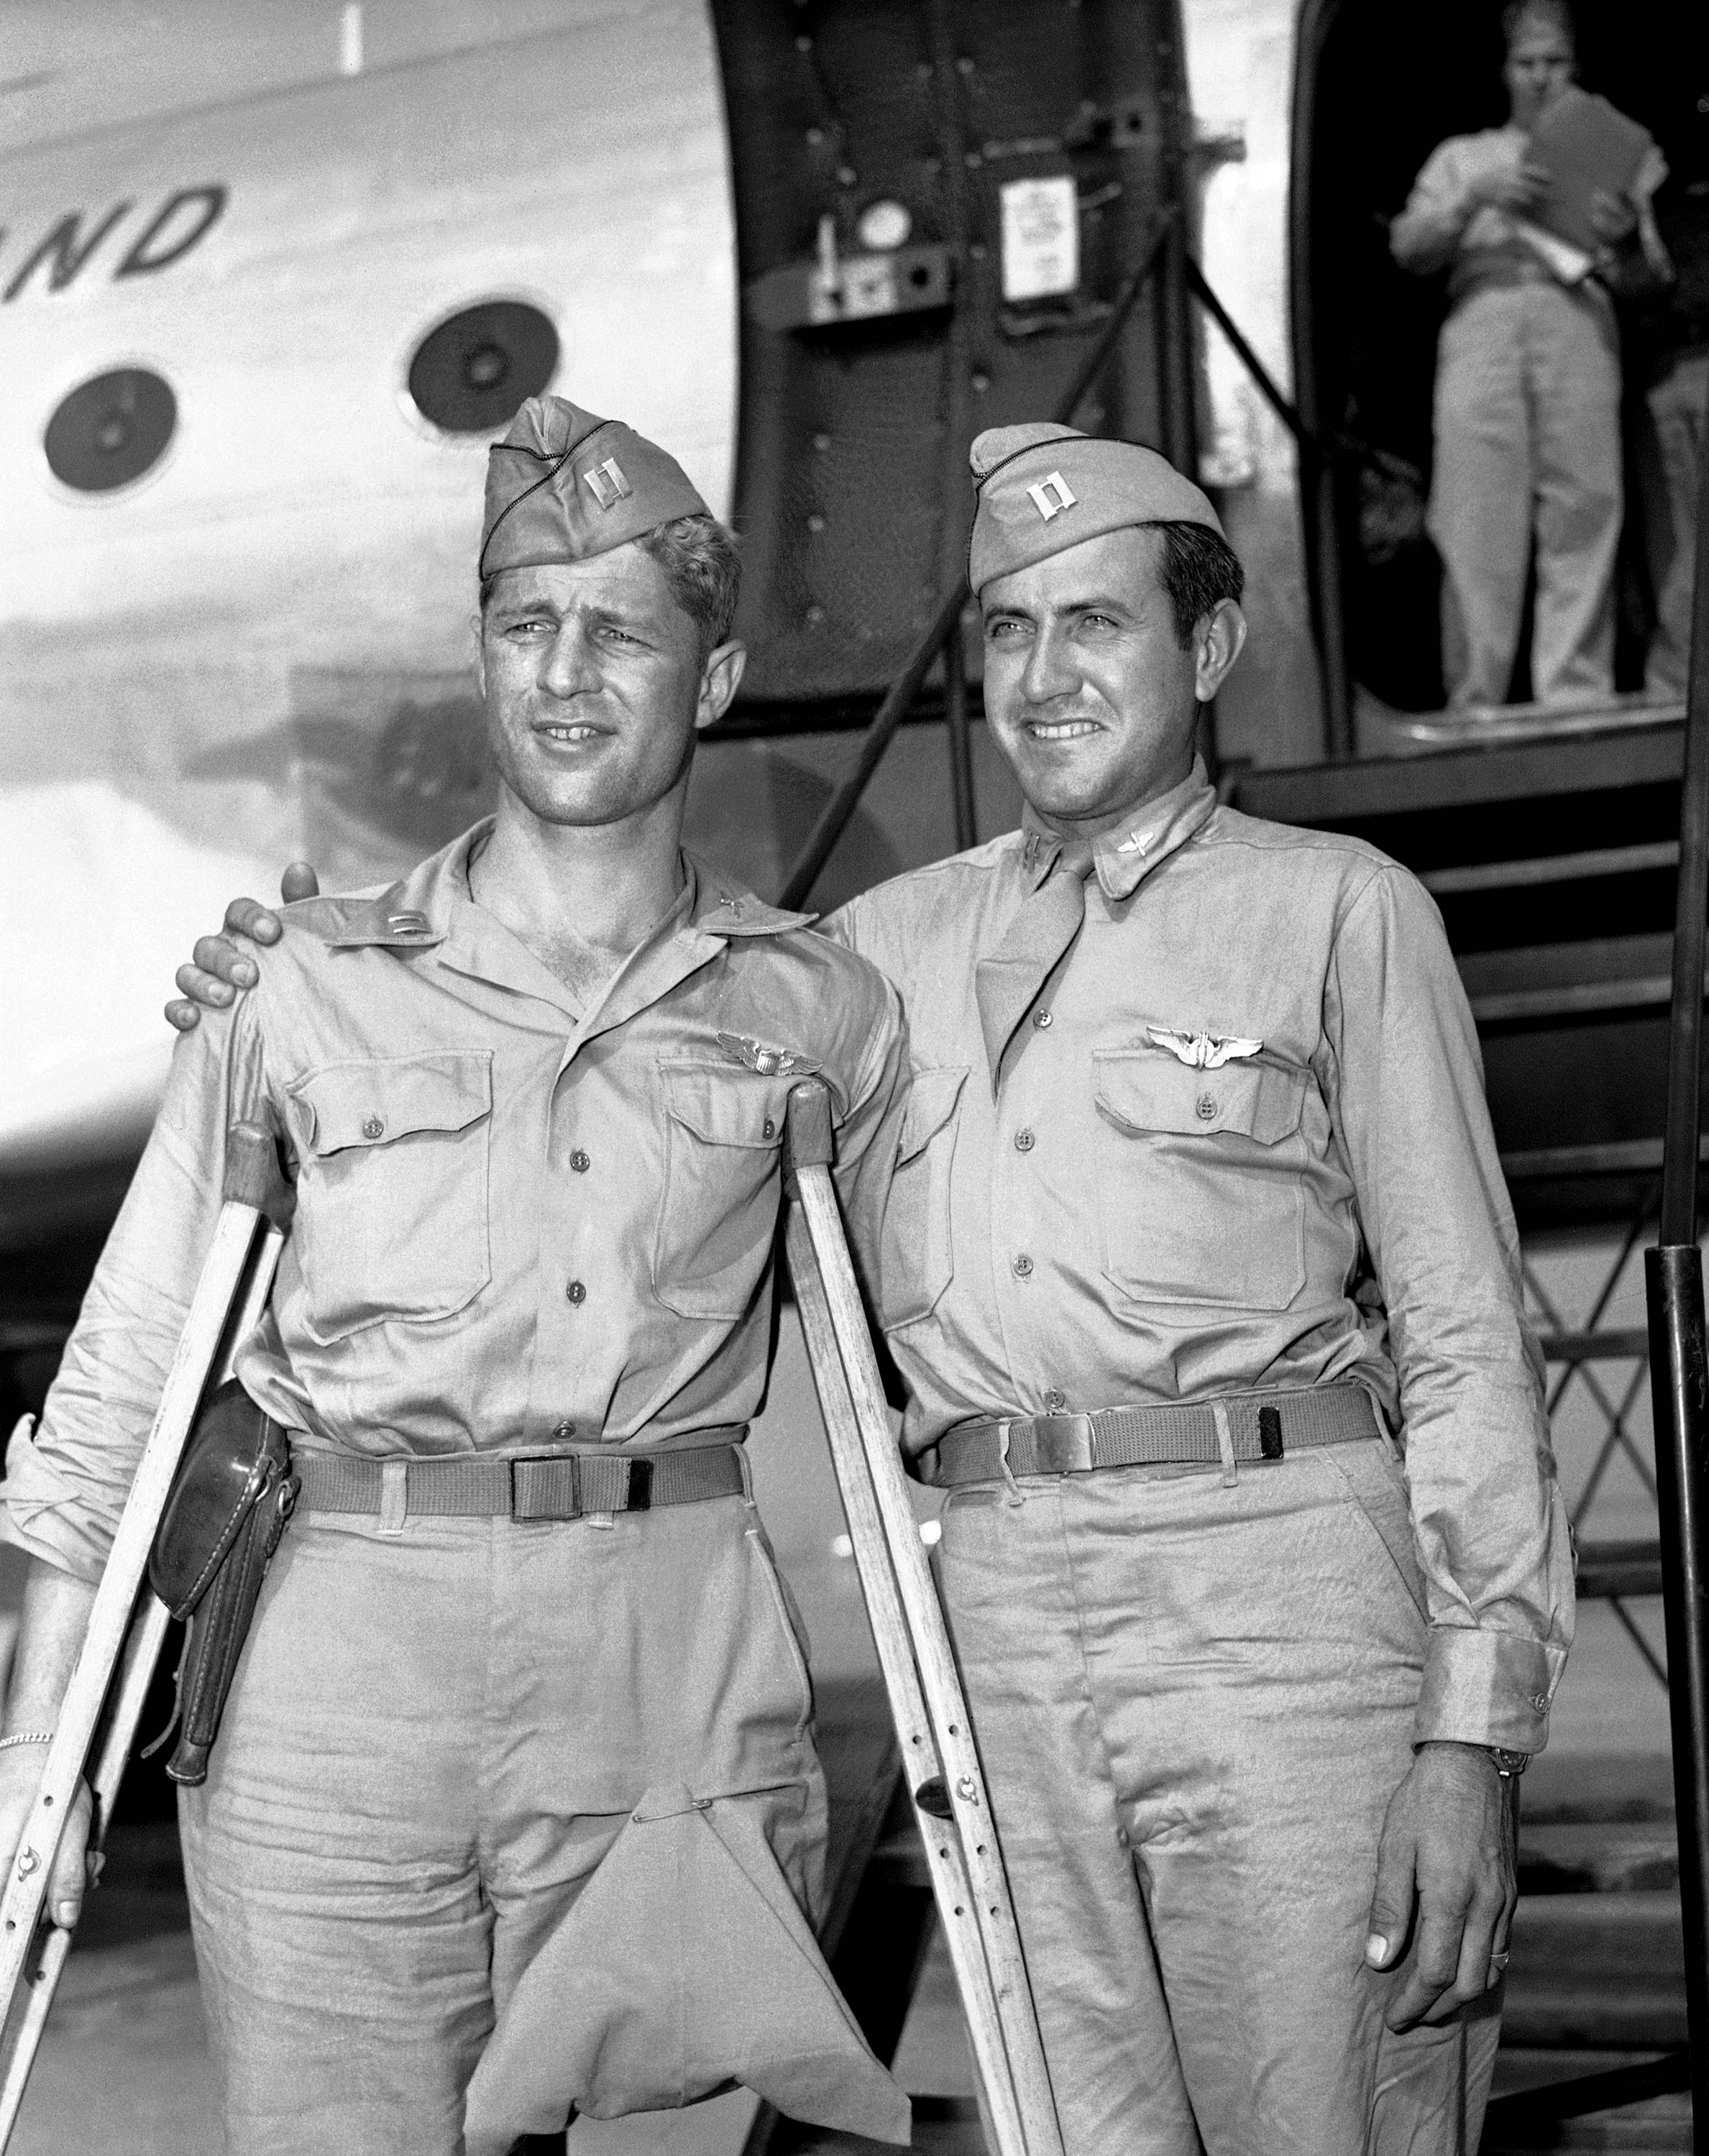 Capt. Louis Zamperini, right, former track star who was adrift 47 days in Pacific after bombing mission against the Japanese and presumed dead, stands with Capt. Fred Garrett. Both were prisoners of war. Zamperini died Wednesday, July 2, 2014. He was 97.